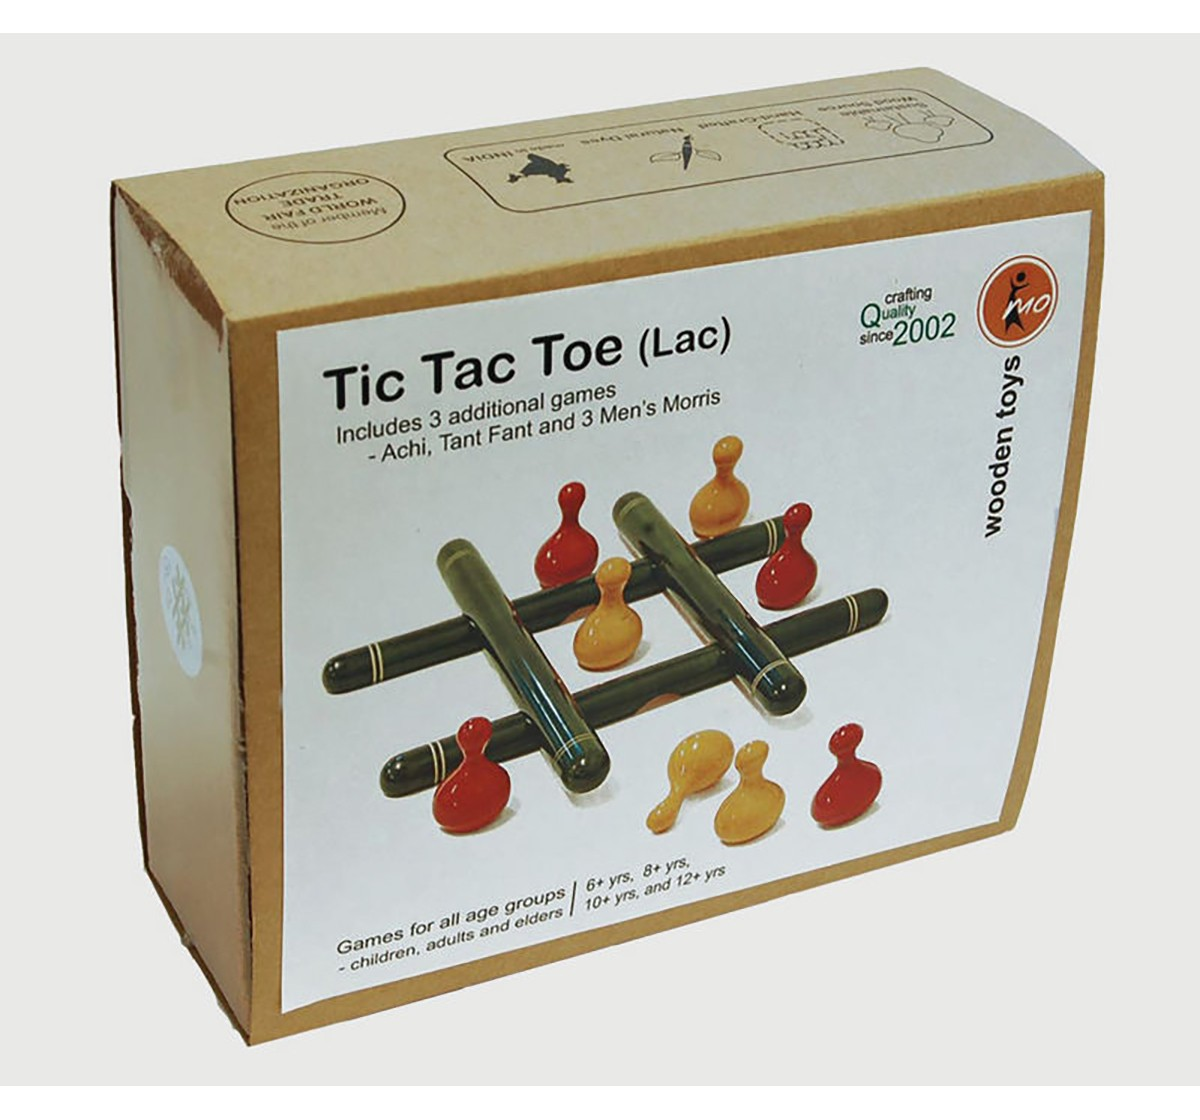 Fairkraft Creations Handmade Wooden Tic Tac Toe Toy Wooden Toys for Kids age 5Y+